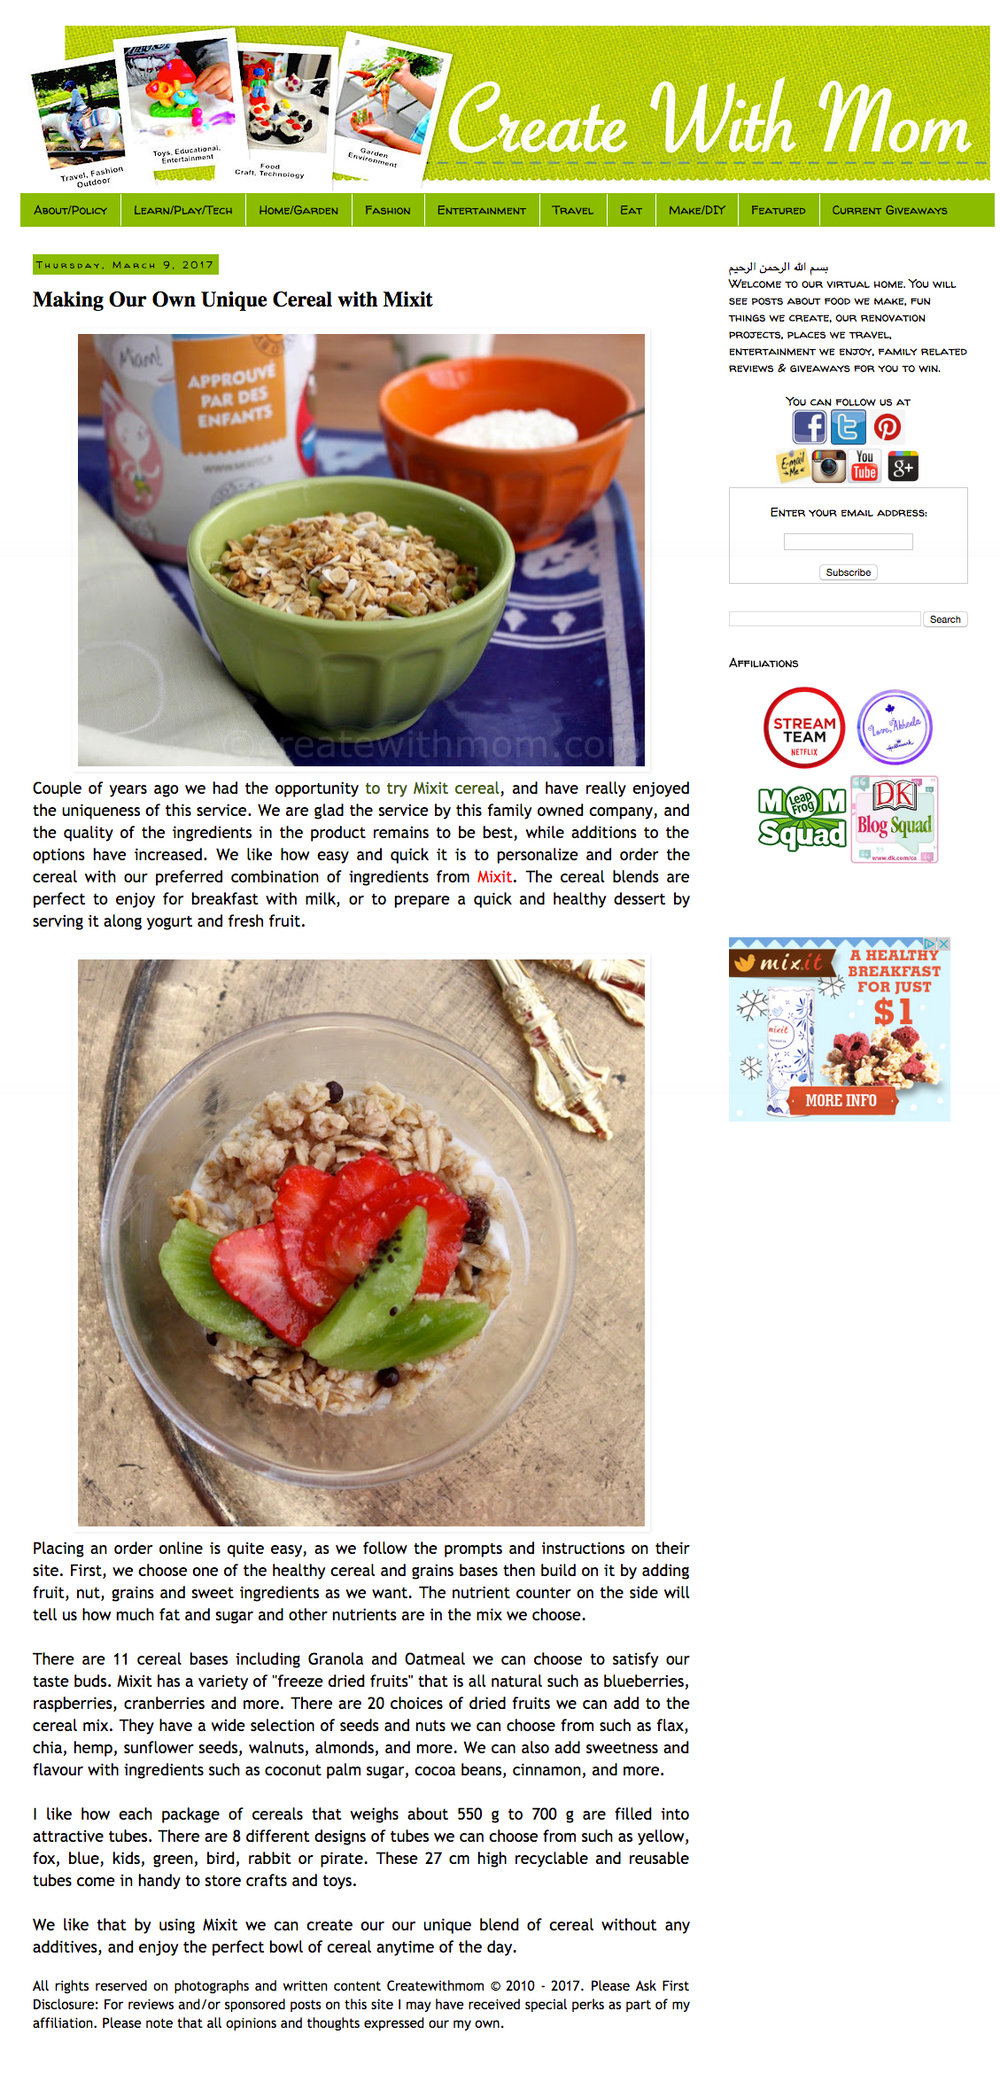 MixIt featured in  Create With Mom Blog